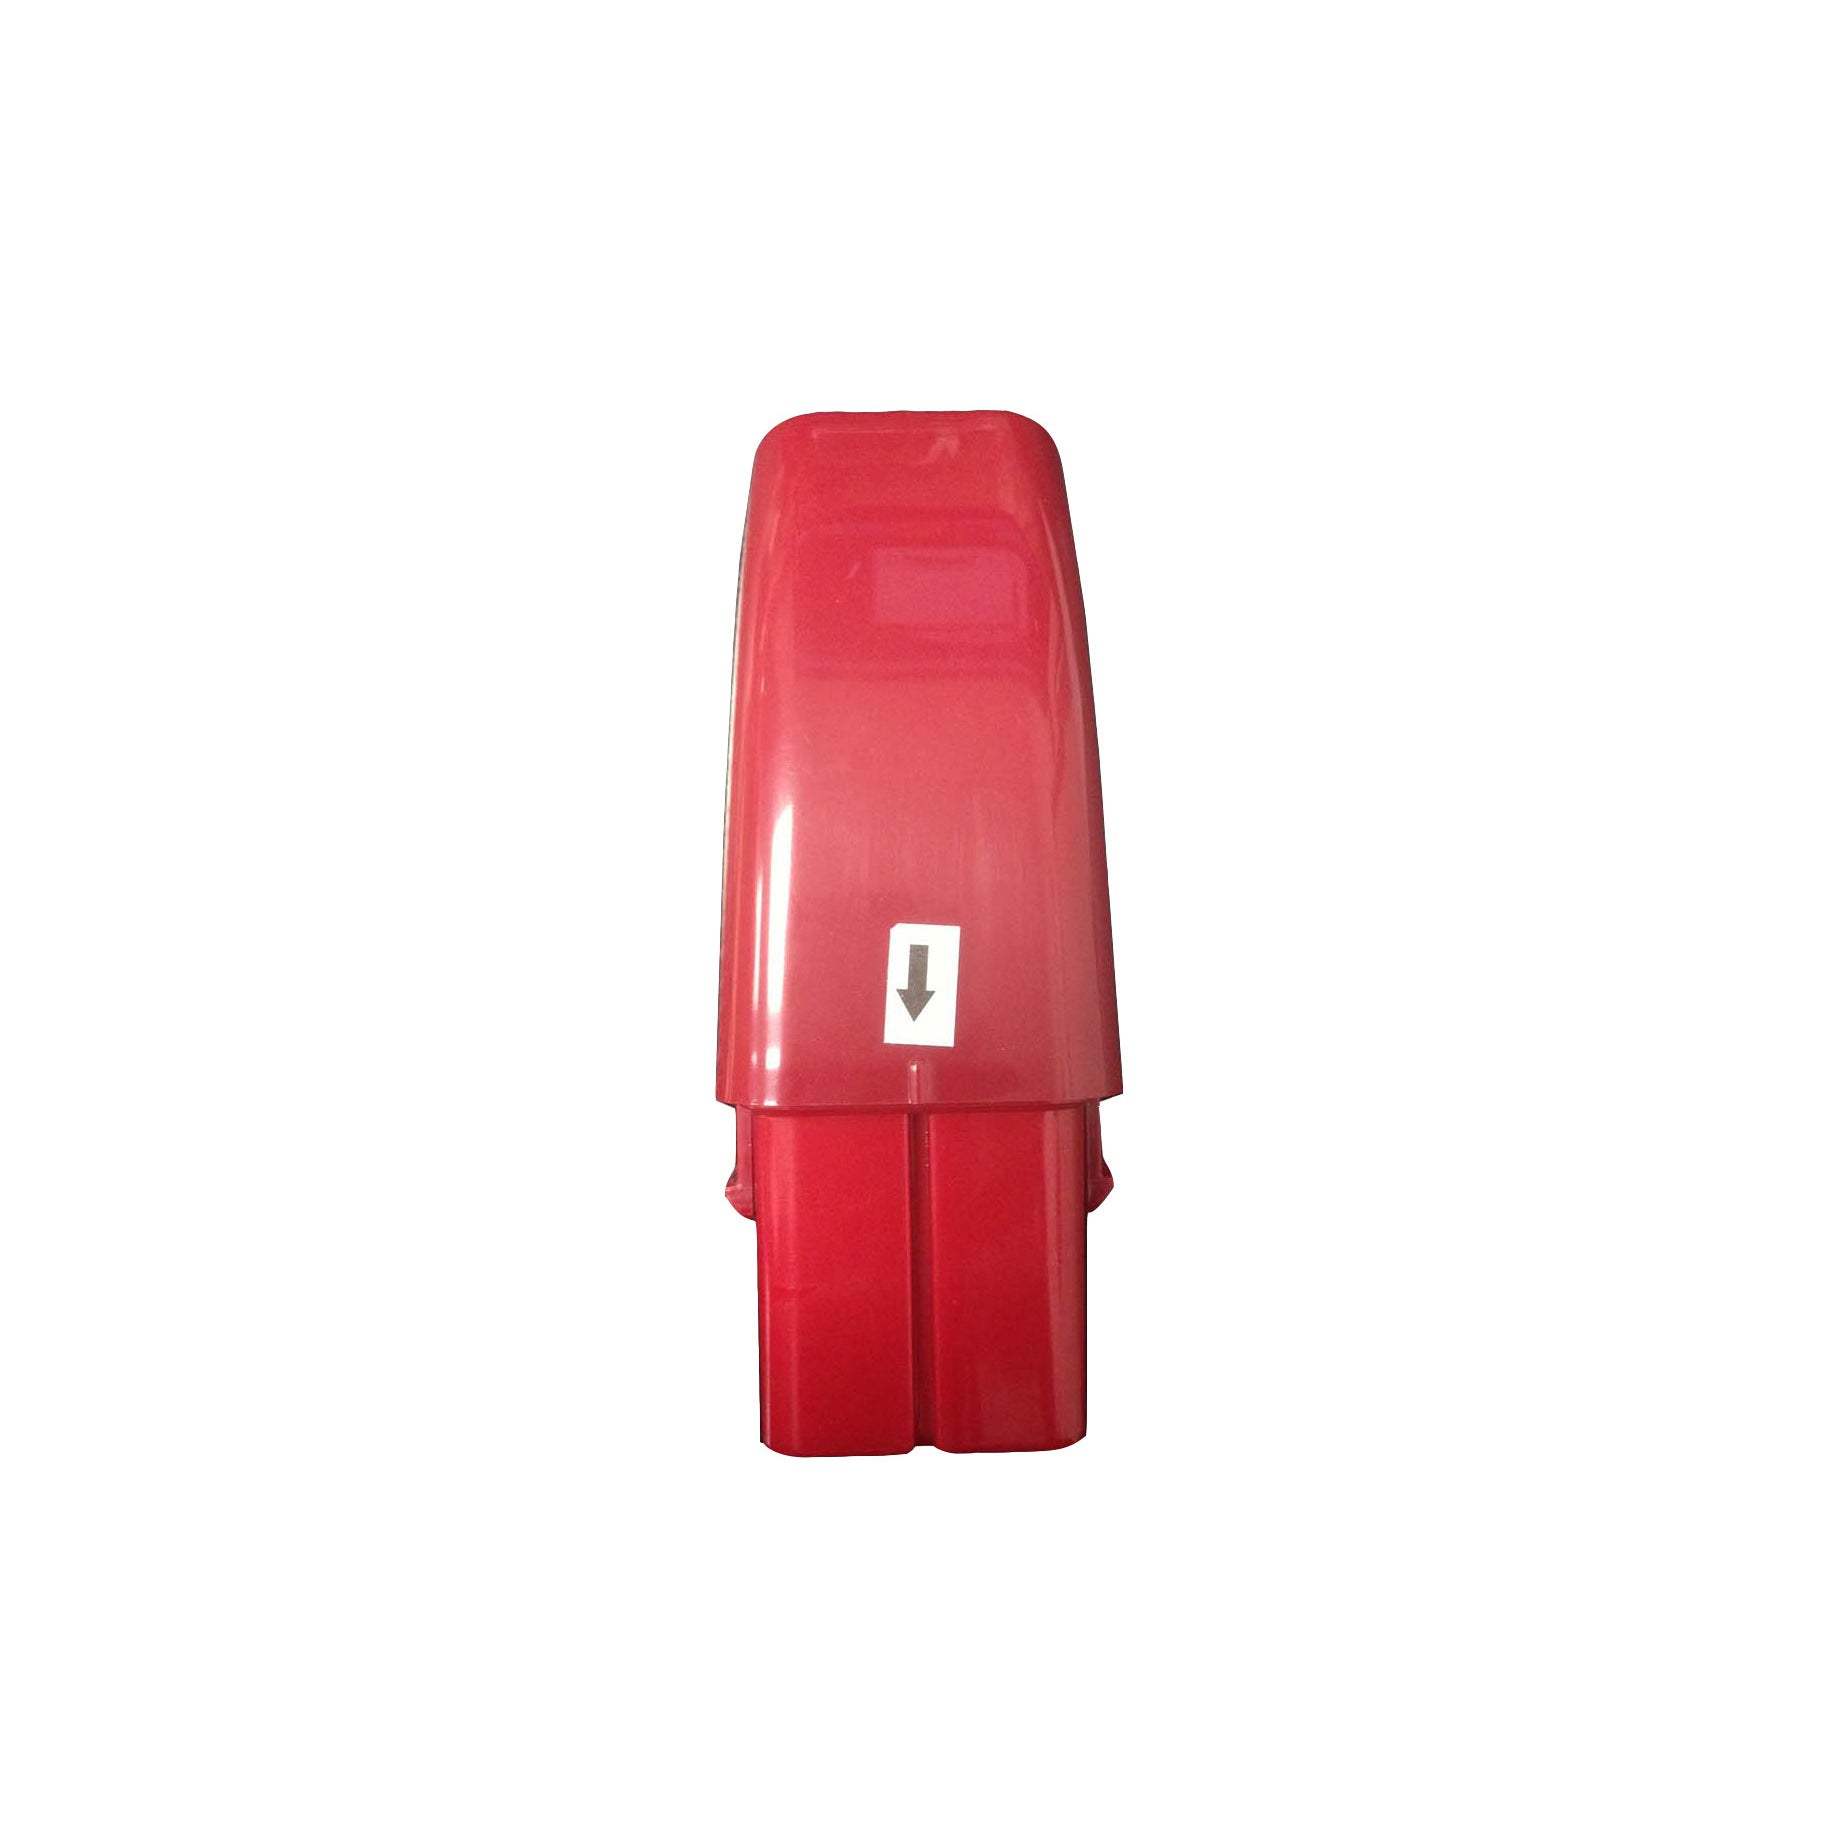 Crucial Vacuum High Capacity Red Vacuum Battery Fits Onte...